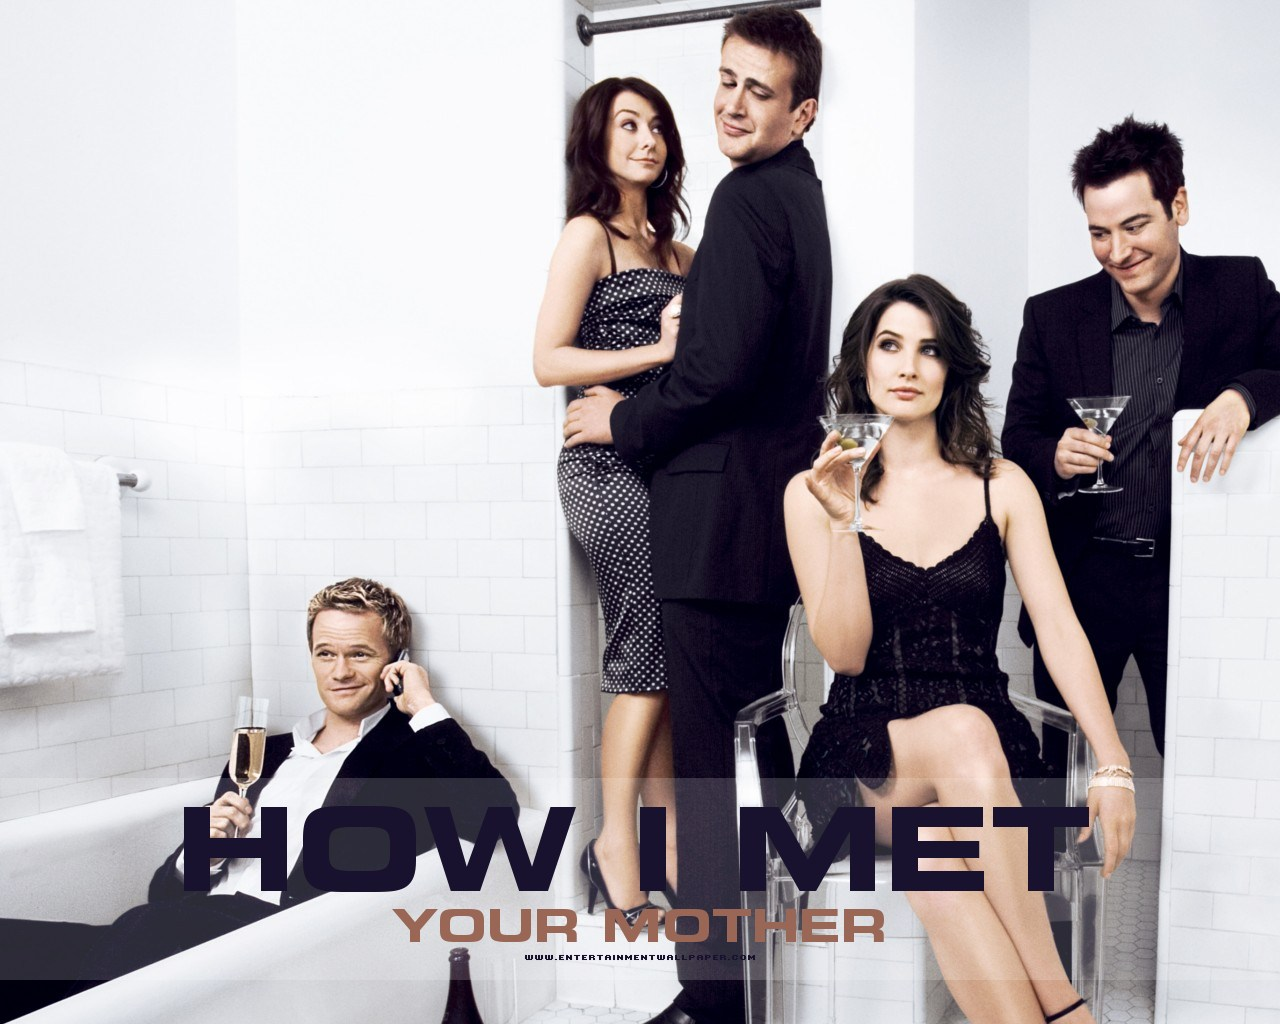 Himym Quotes Wallpaper Wallpaper Db How I Met Your Mother Background